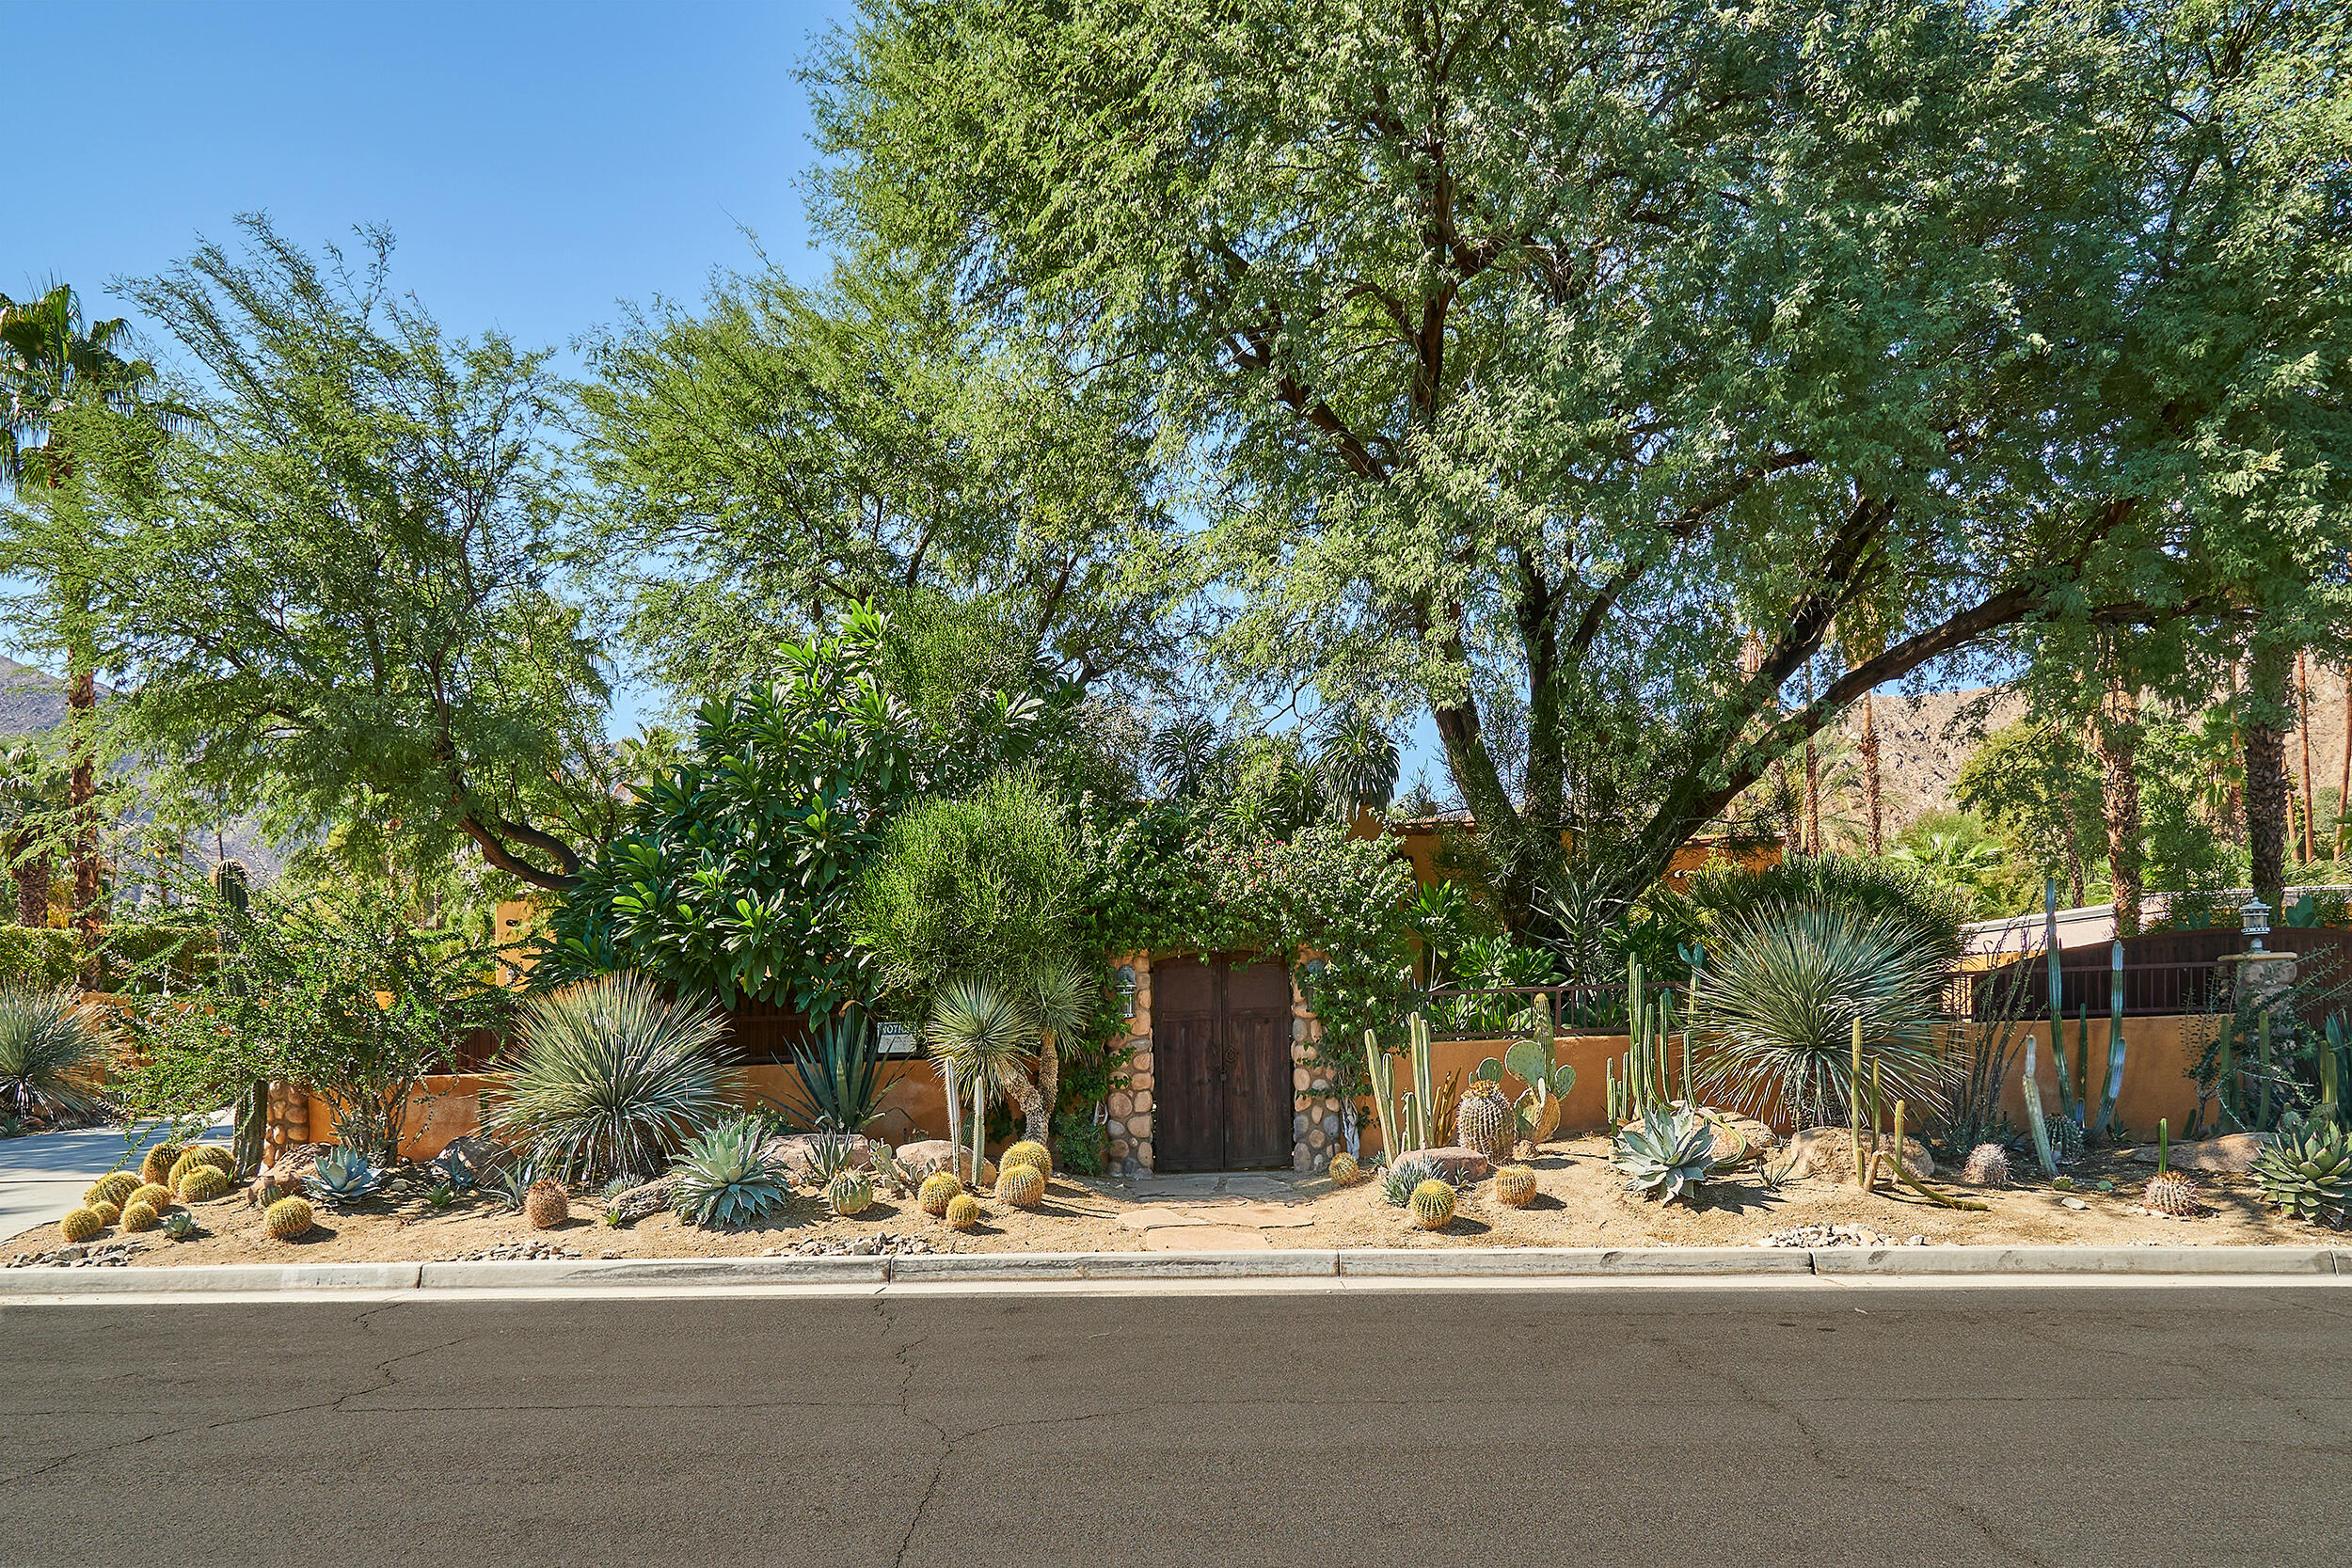 RARELY AVAILABLE:  Quality, CHARMING Spanish in Magnesia Falls Cove! Large lot, south- facing back yard with mountain views. Completely walled and double gated with wood and steel. Amazing finishes and authentic touches throughout. 4 Beds and 5 baths in total. Separate casita PLUS a huge garage PLUS bonus room and bath.  Entertain in this spectacular resort setting with unique pool and spa in a garden paradise of citrus trees, palms, plumeria and specimen cactus. Open & well appointed kitchen sets the tone for gracious living and relaxing dinners. Fountains, water features, palapas and outdoor showers might inspire you to make this unusual offering your new, luxurious desert retreat.